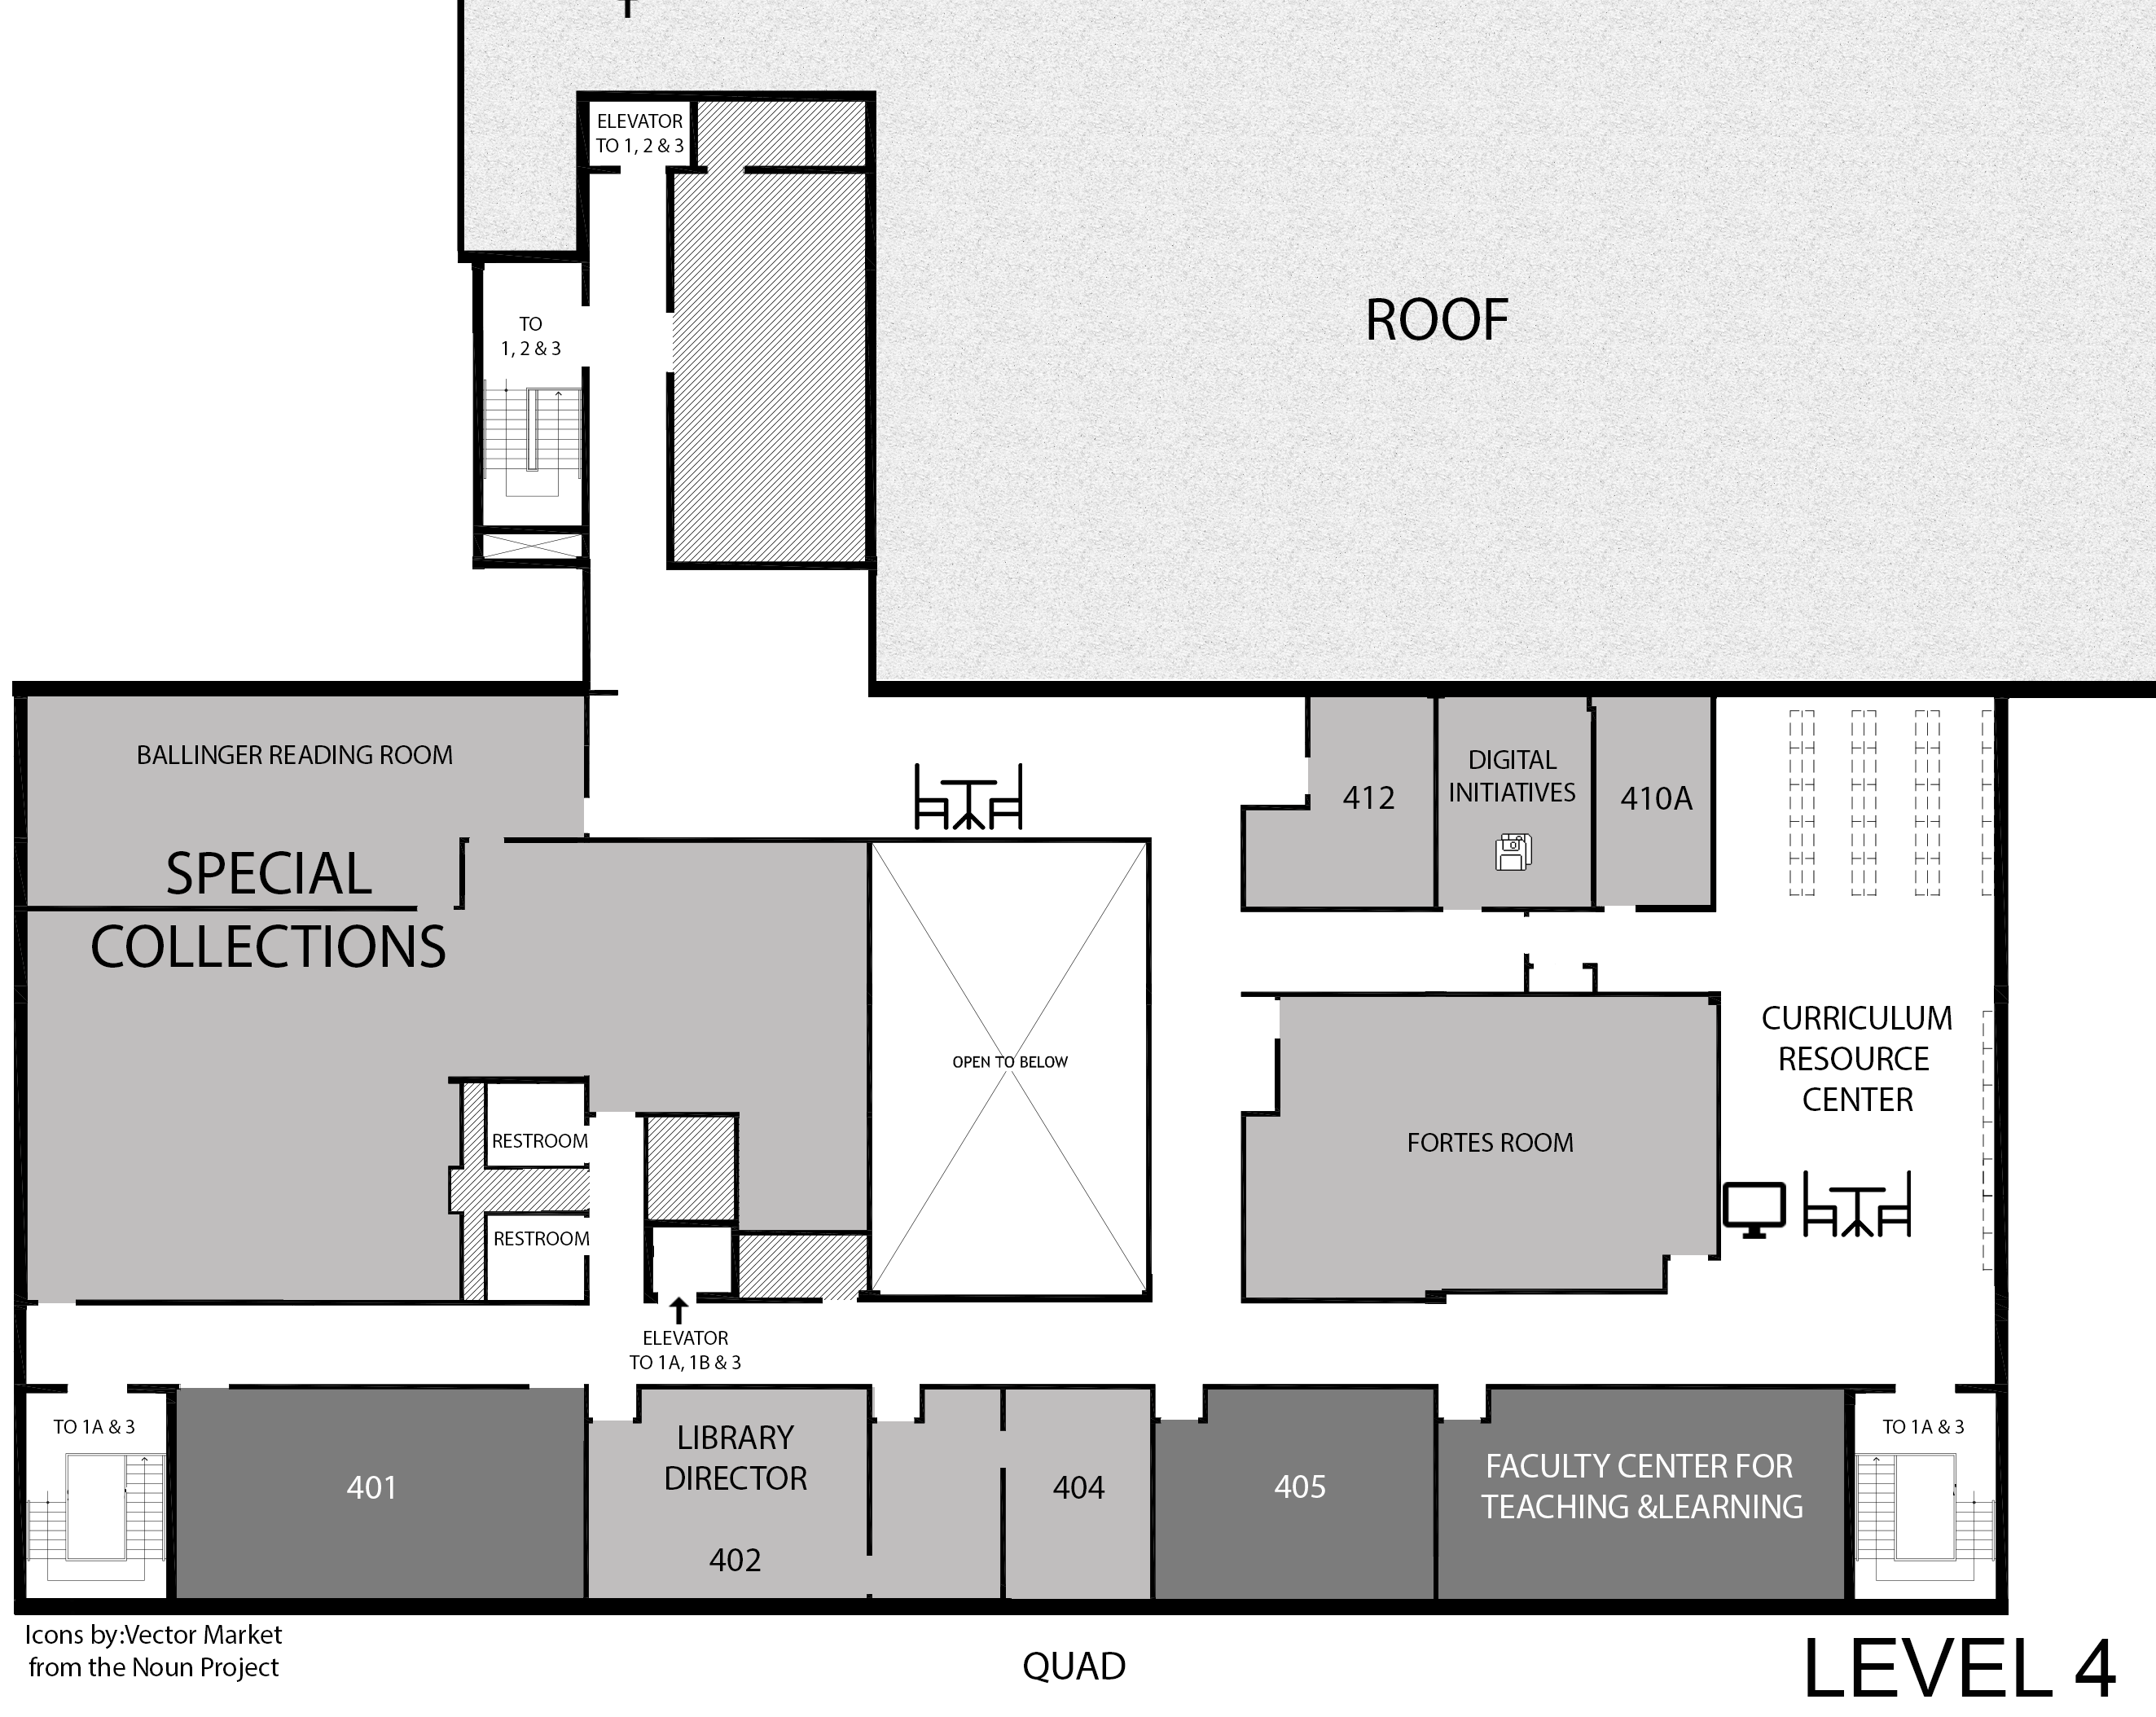 Level 4 floor map